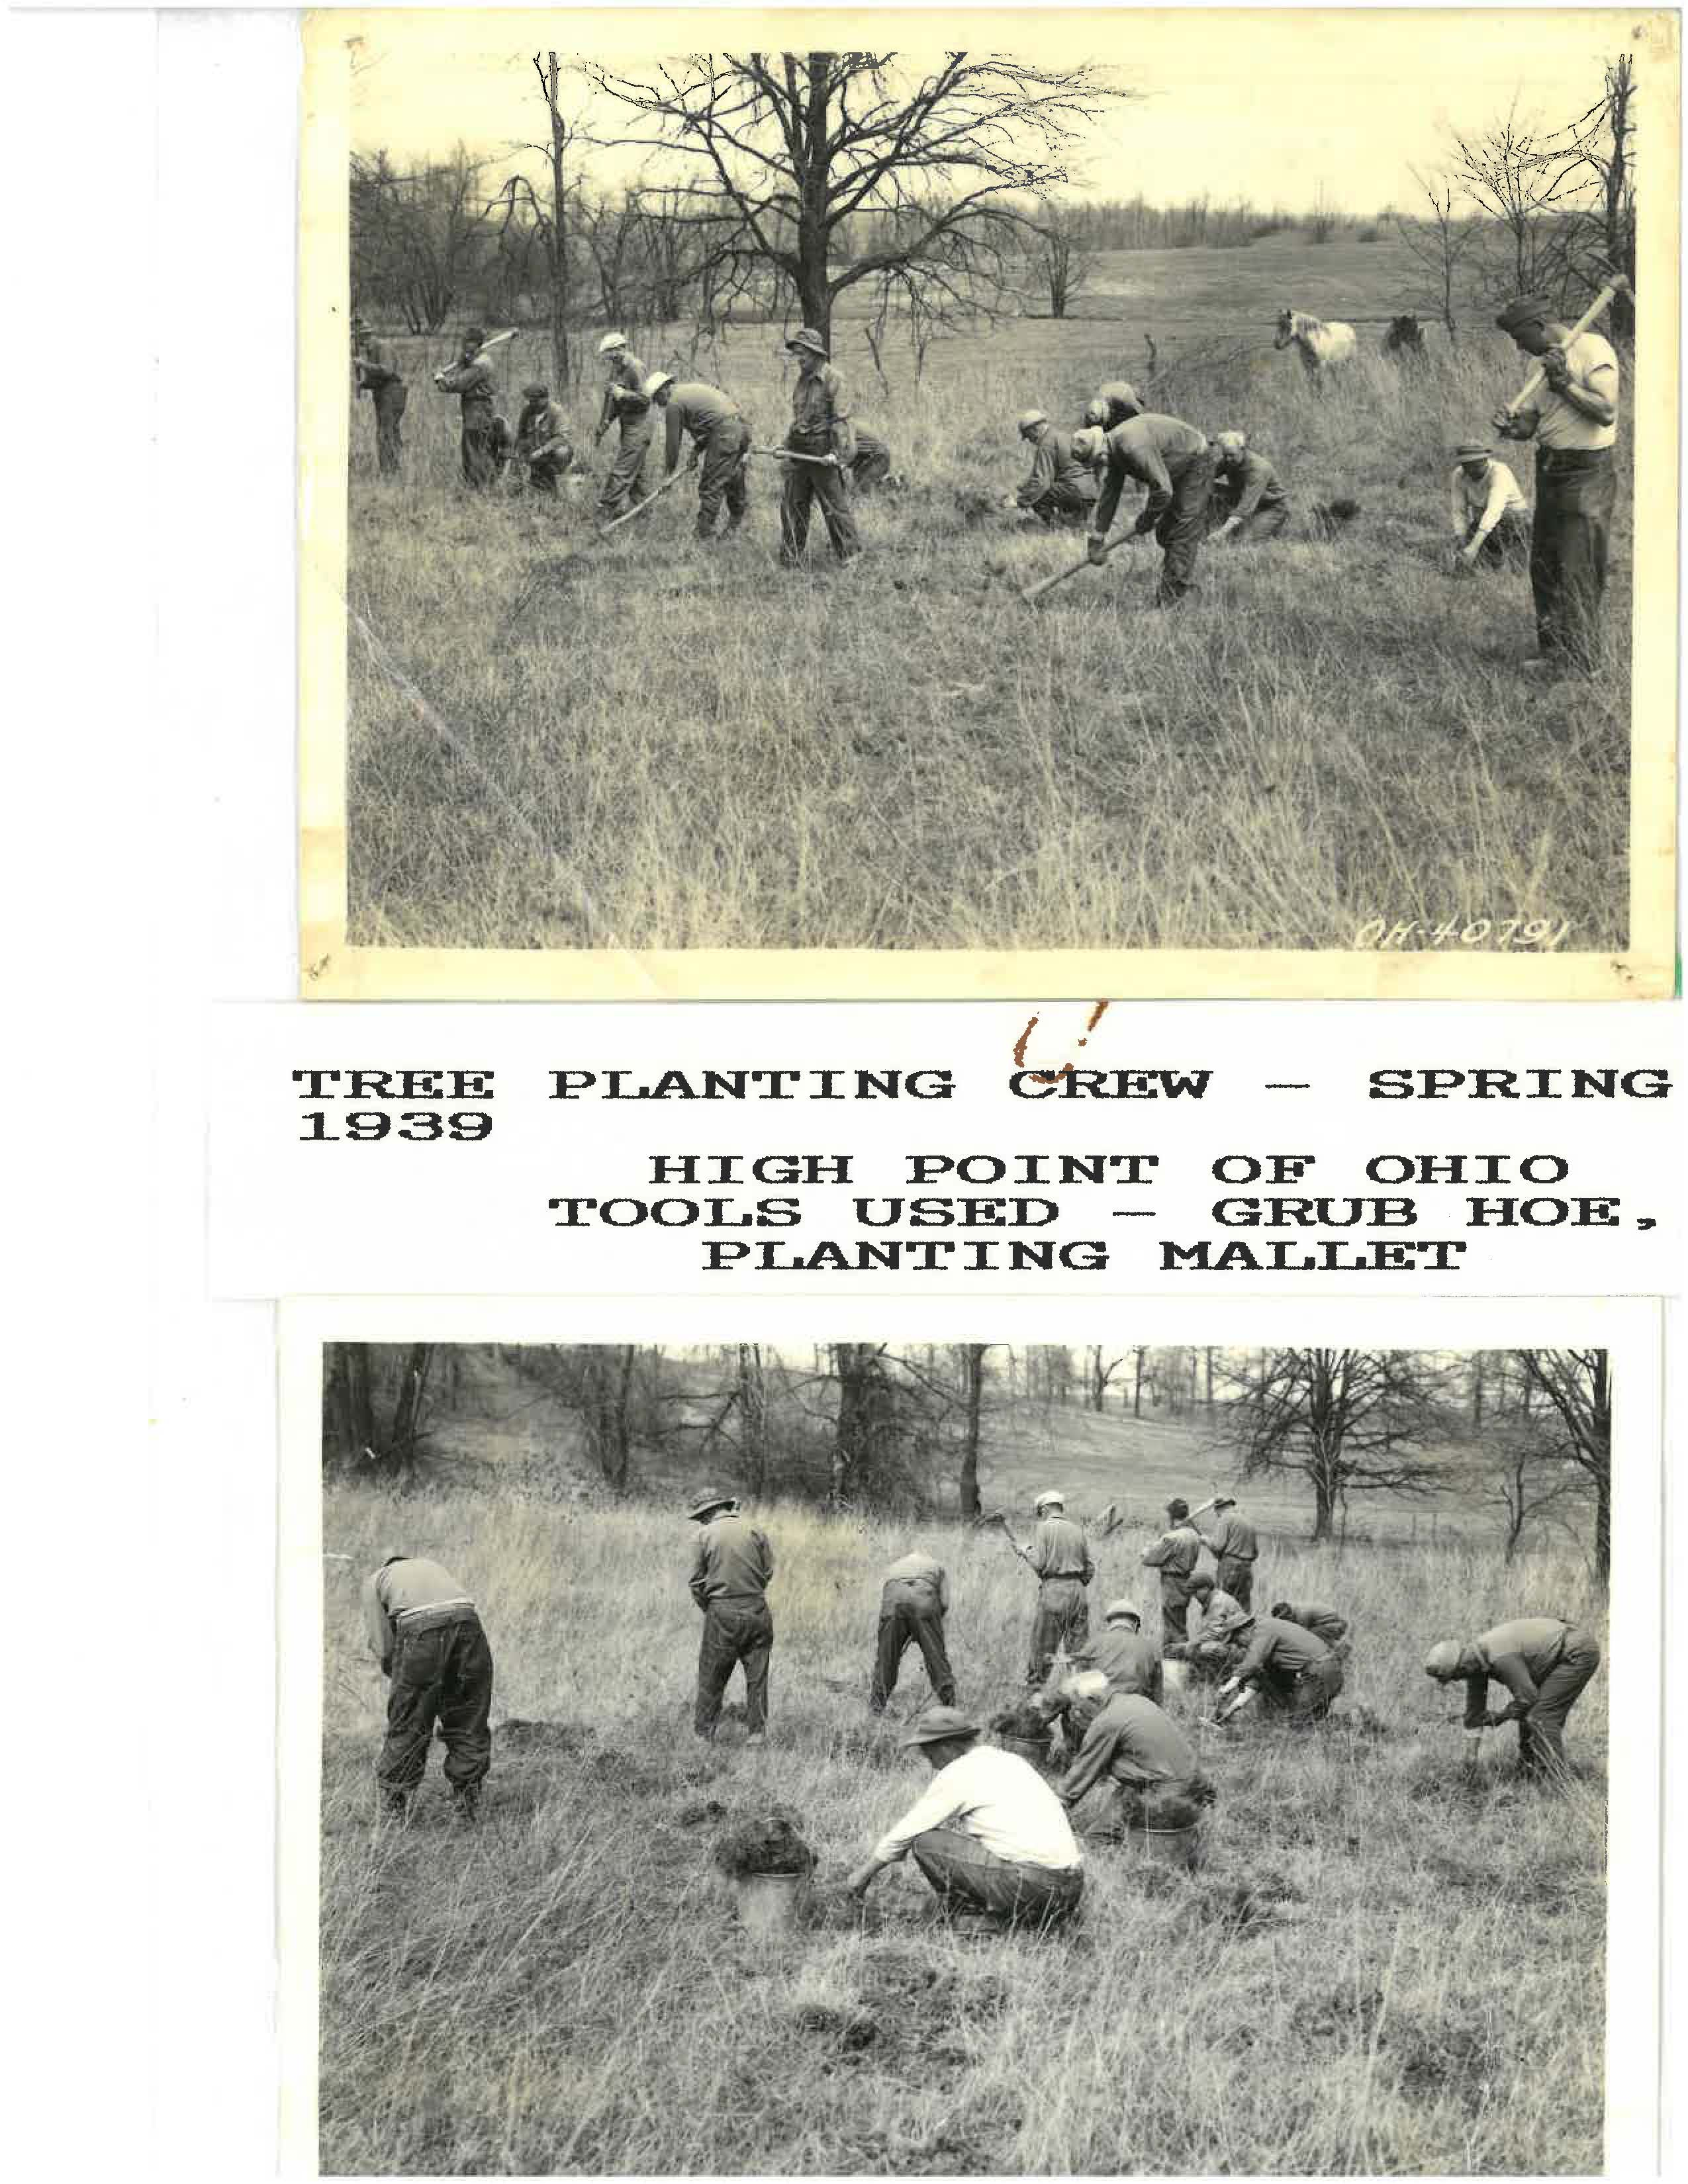 Planting_Crew_Spring_1939_High_Point_of_Ohio